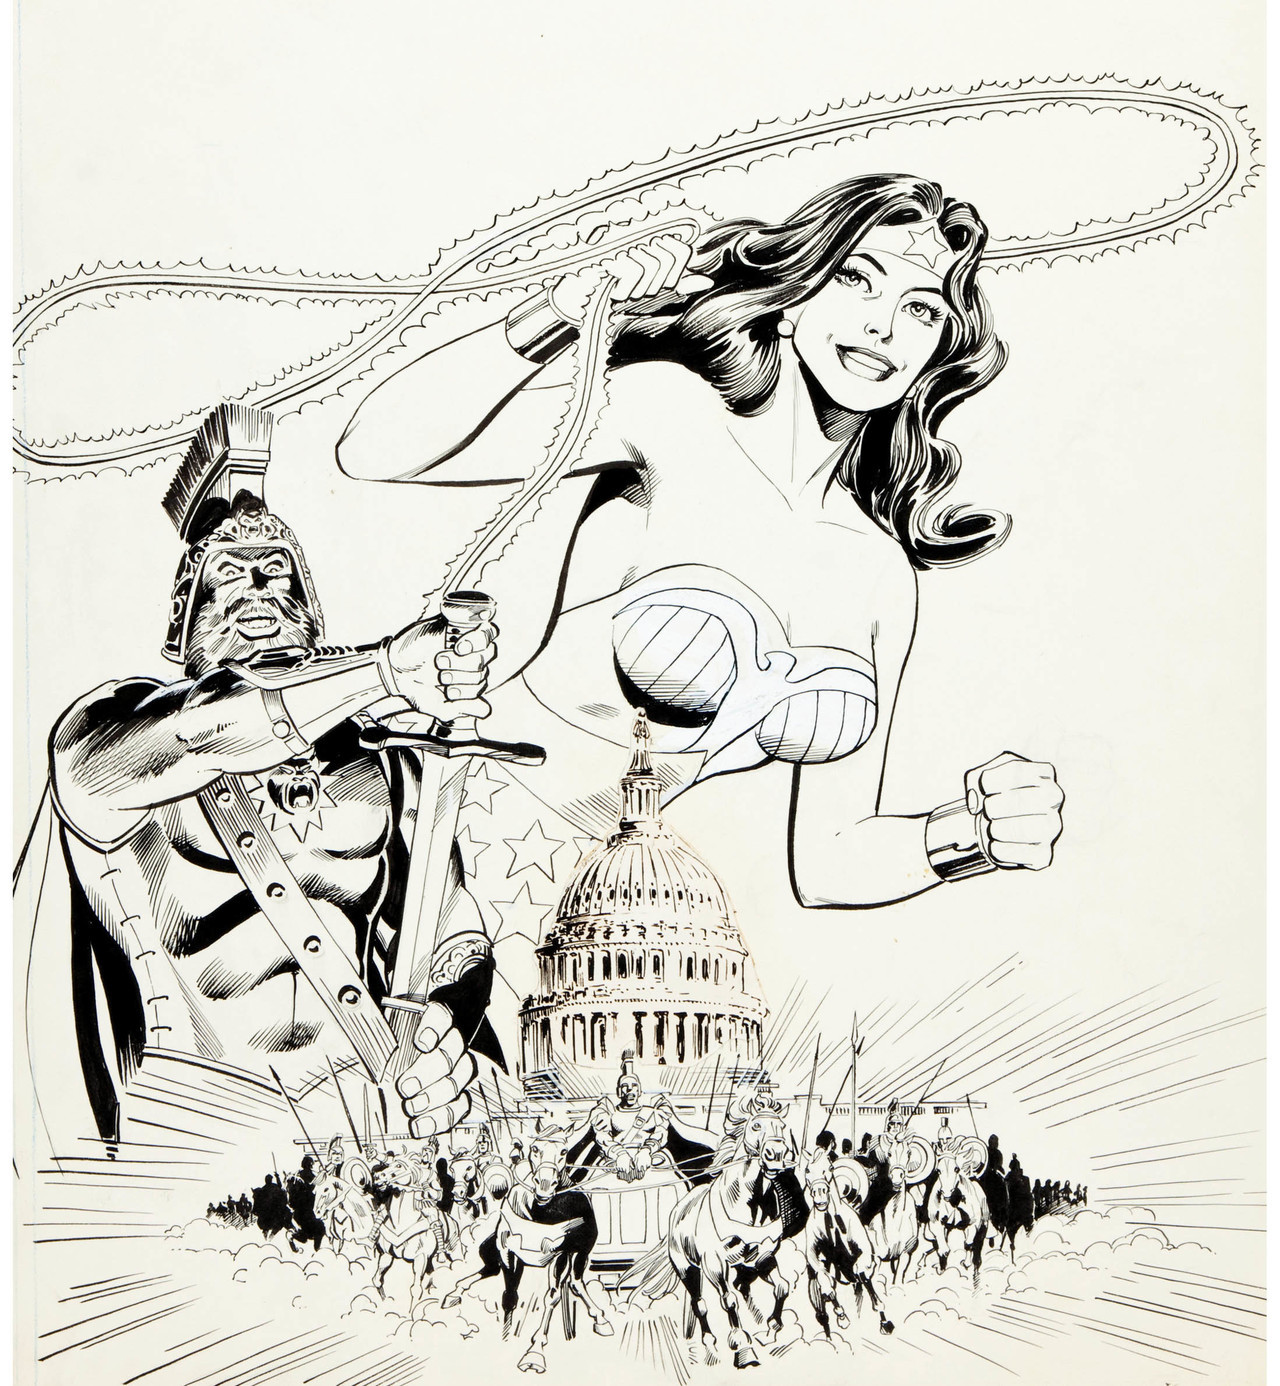 Original cover art by Dick Giordano from the Wonder Woman, Invaders from Mars coloring book, 1980.